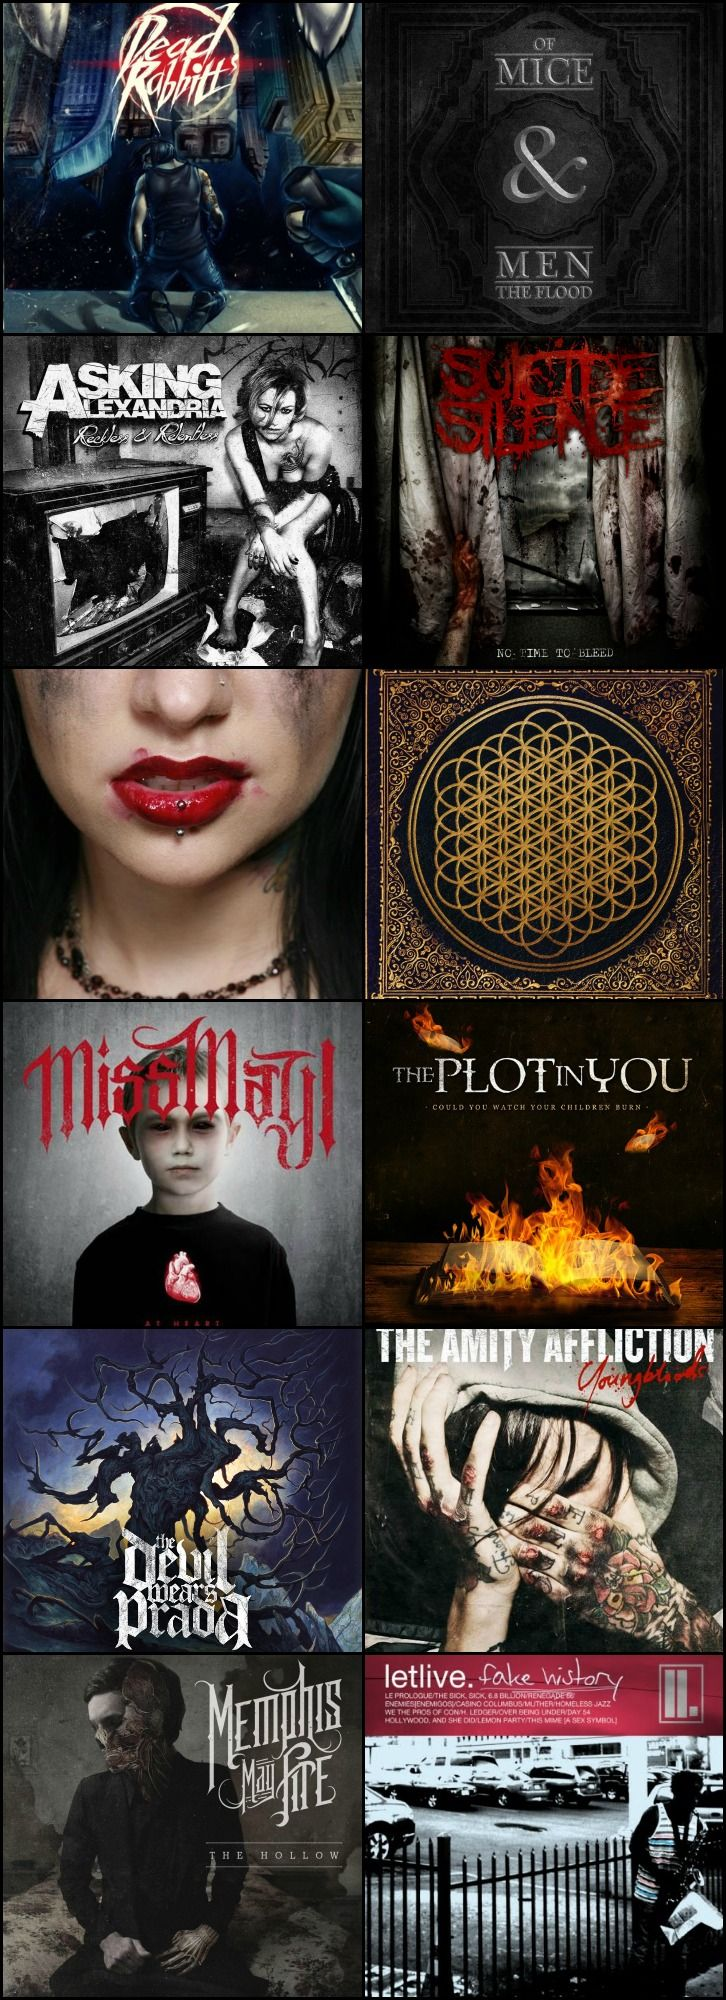 Dead Rabbits, Of Mice & Men, Asking Alexandria, Suicide Silence, Escape The Fate, Bring Me The Horizon, Miss May I, The Plot In You, The Devil Wears Prada, The Family Affliction, Memphis May Fire and Letlive